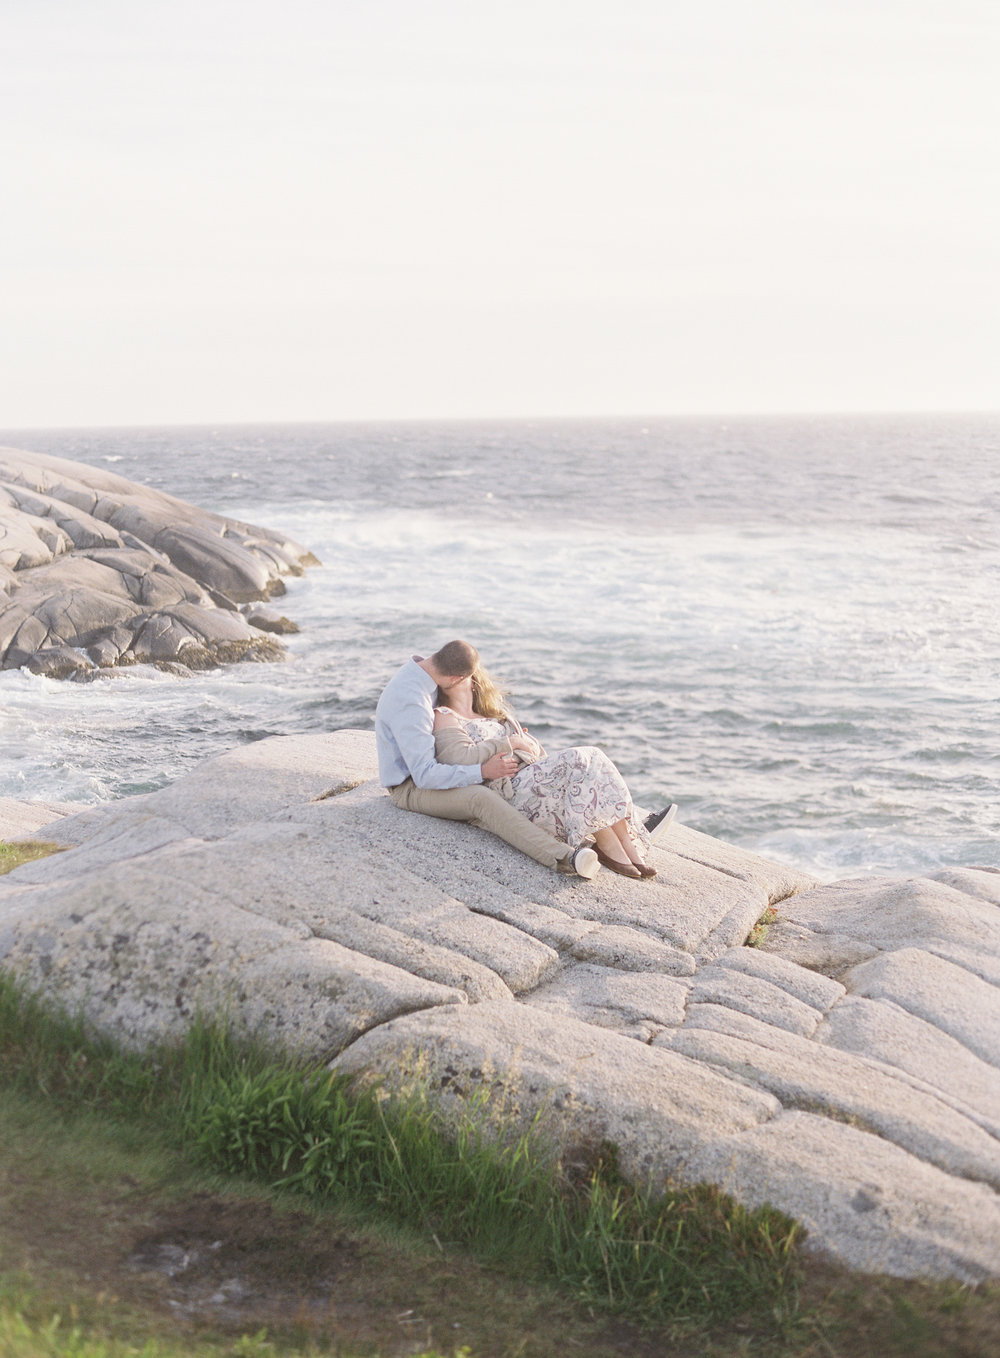 Jacqueline Anne Photography - Alex and Andrew Engagement at Peggy's Cove - Halifax-124.jpg